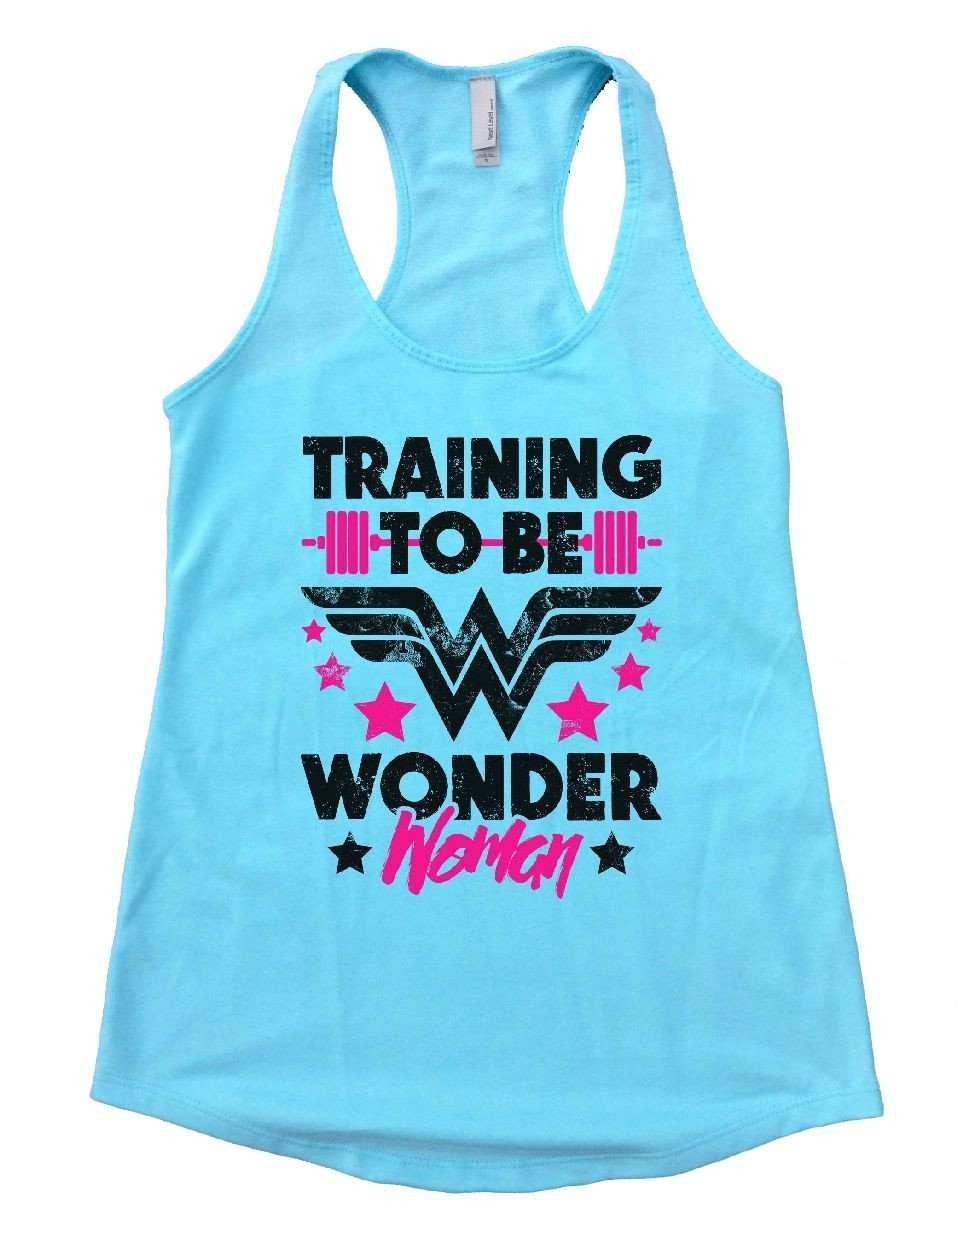 929b3f163a148 TRAINING TO BE WONDER Woman Womens Workout Tank Top